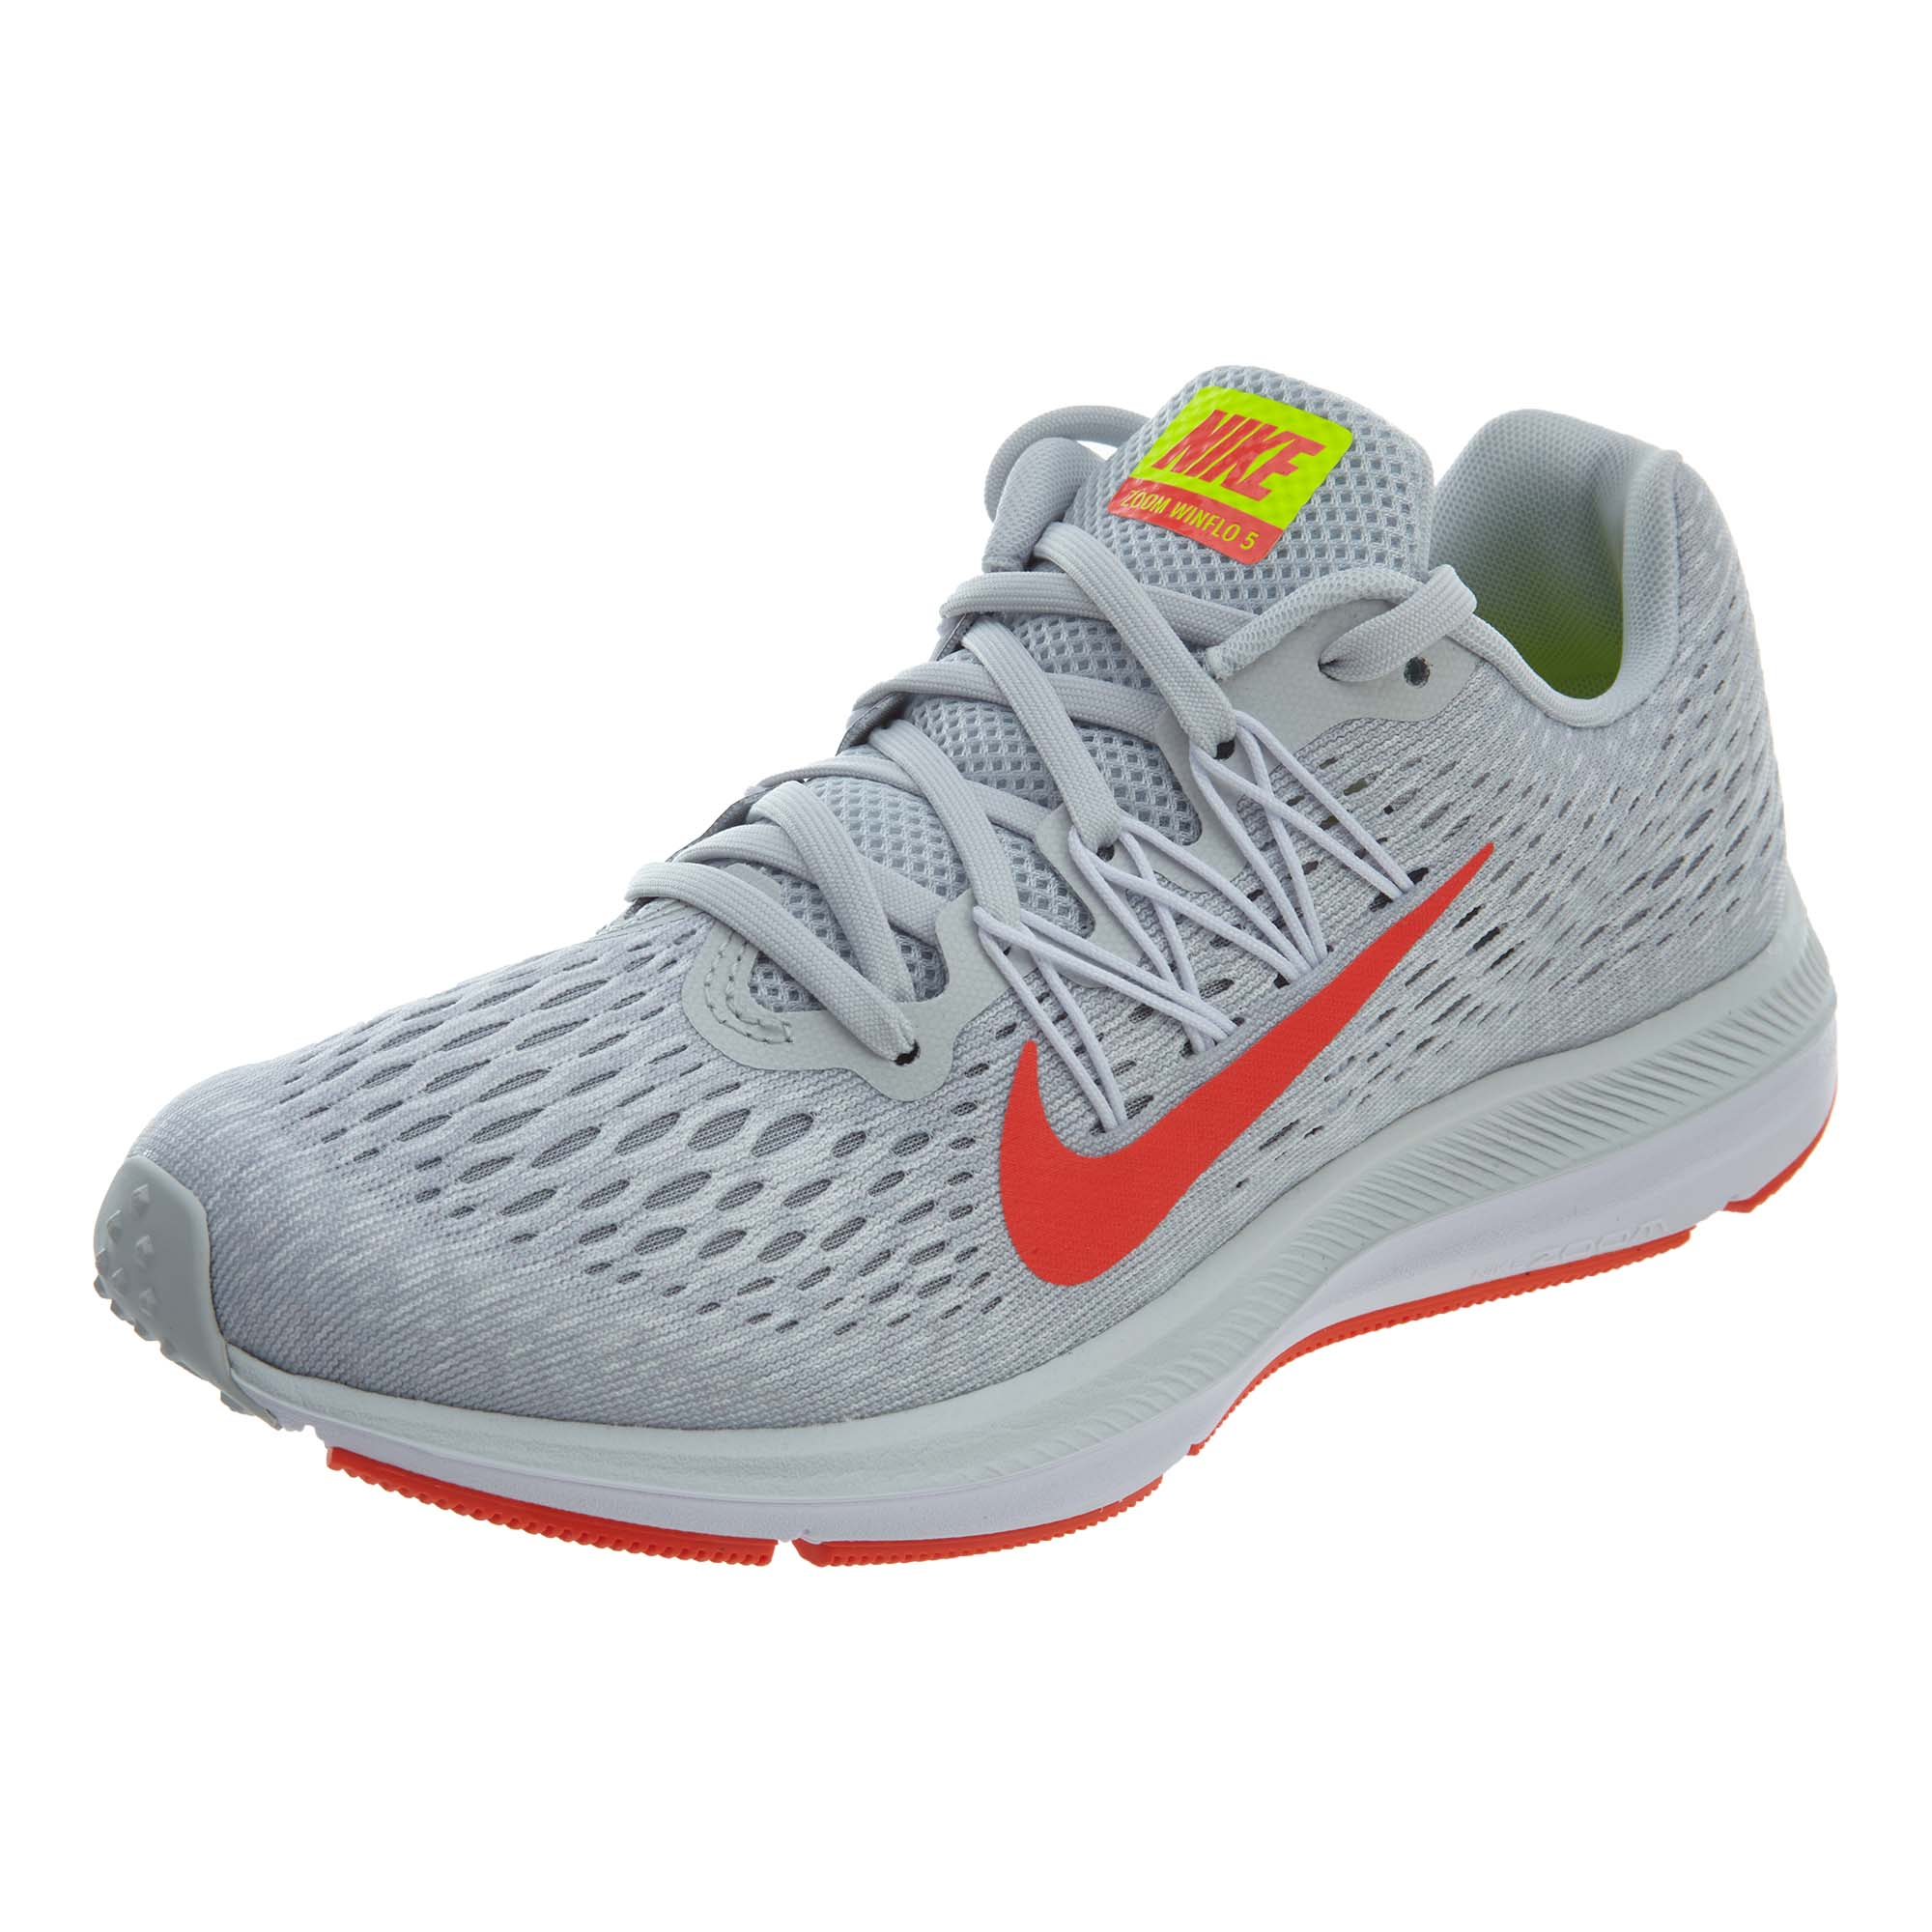 buy popular 09776 3a3b8 Details about Nike Womens Zoom Winflo 5 Running Shoes AA7414-005